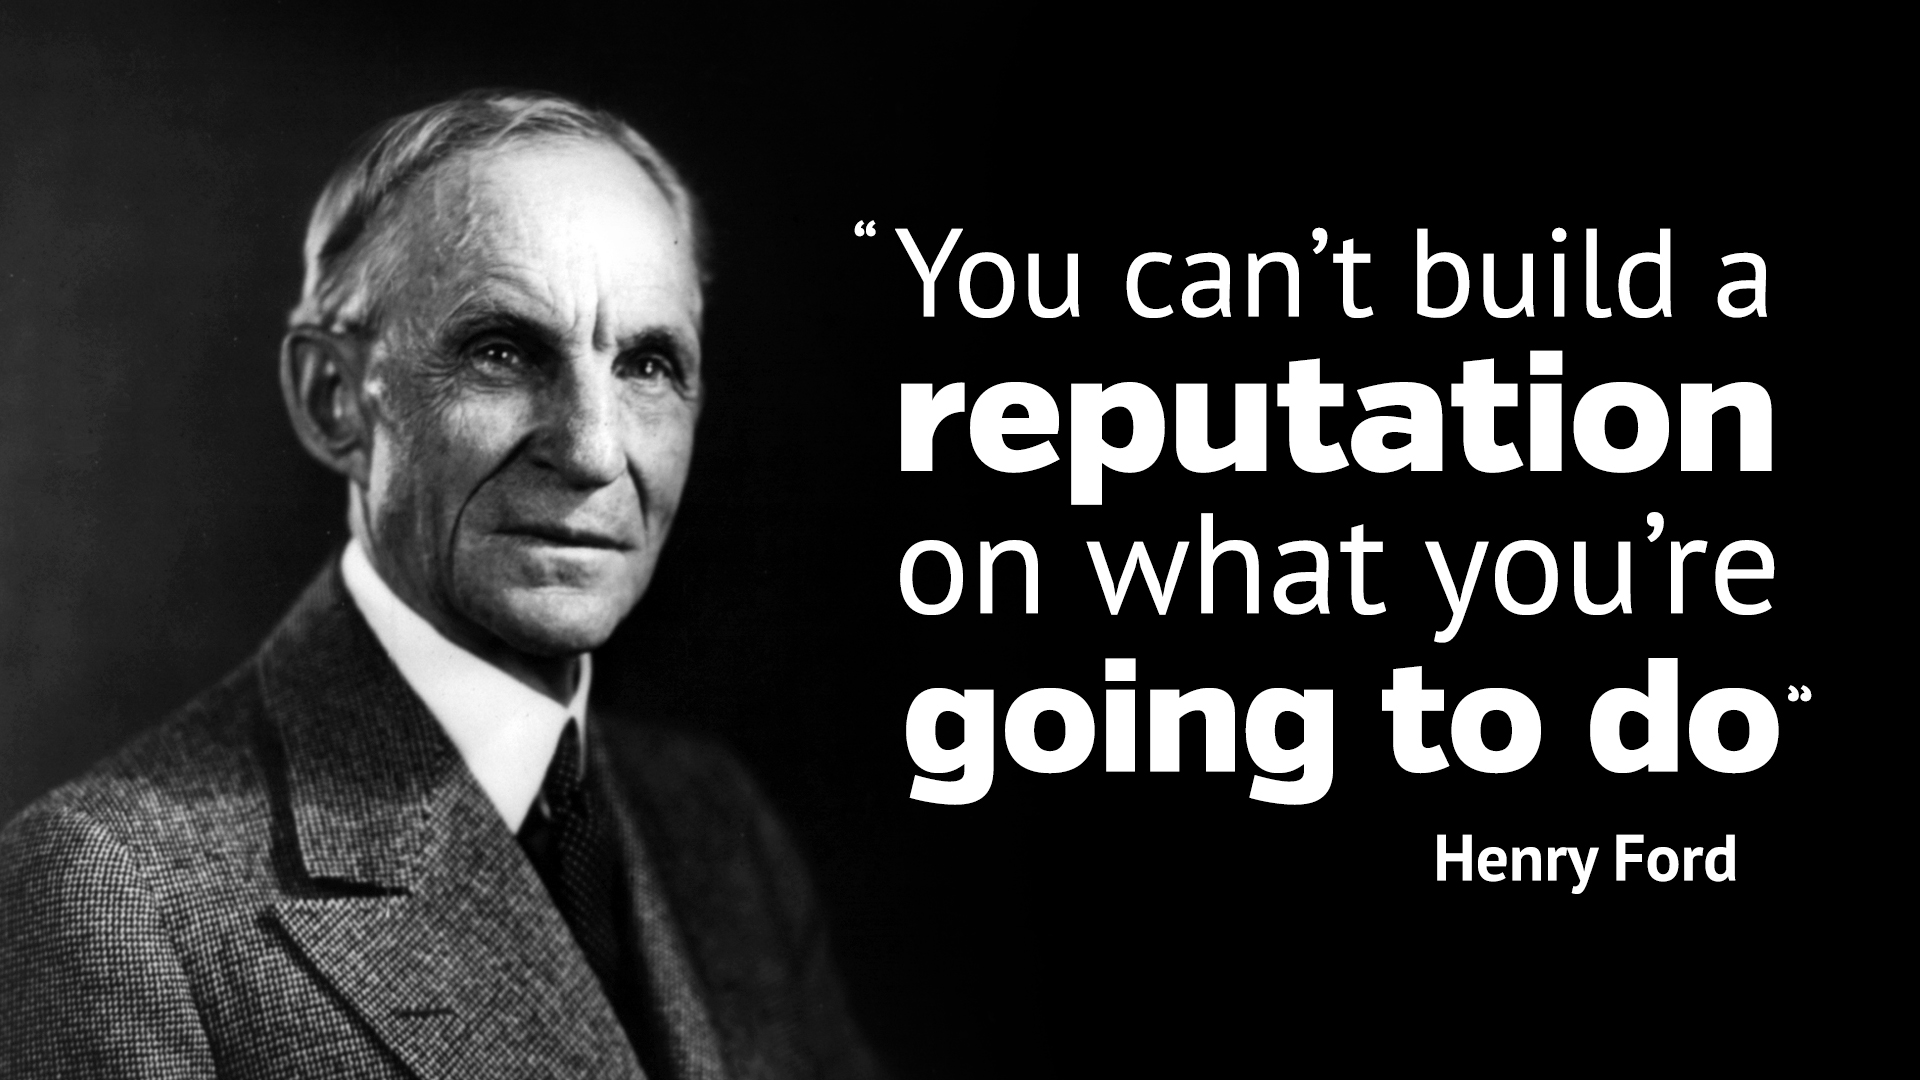 the success of henry ford Henry ford didn't enjoy instant success but even through failures, henry kept innovating today his net worth at death would be equal to $200 billion 66 years after his demise henry is still celebrated as a technological genius and creative force in the automobile market.